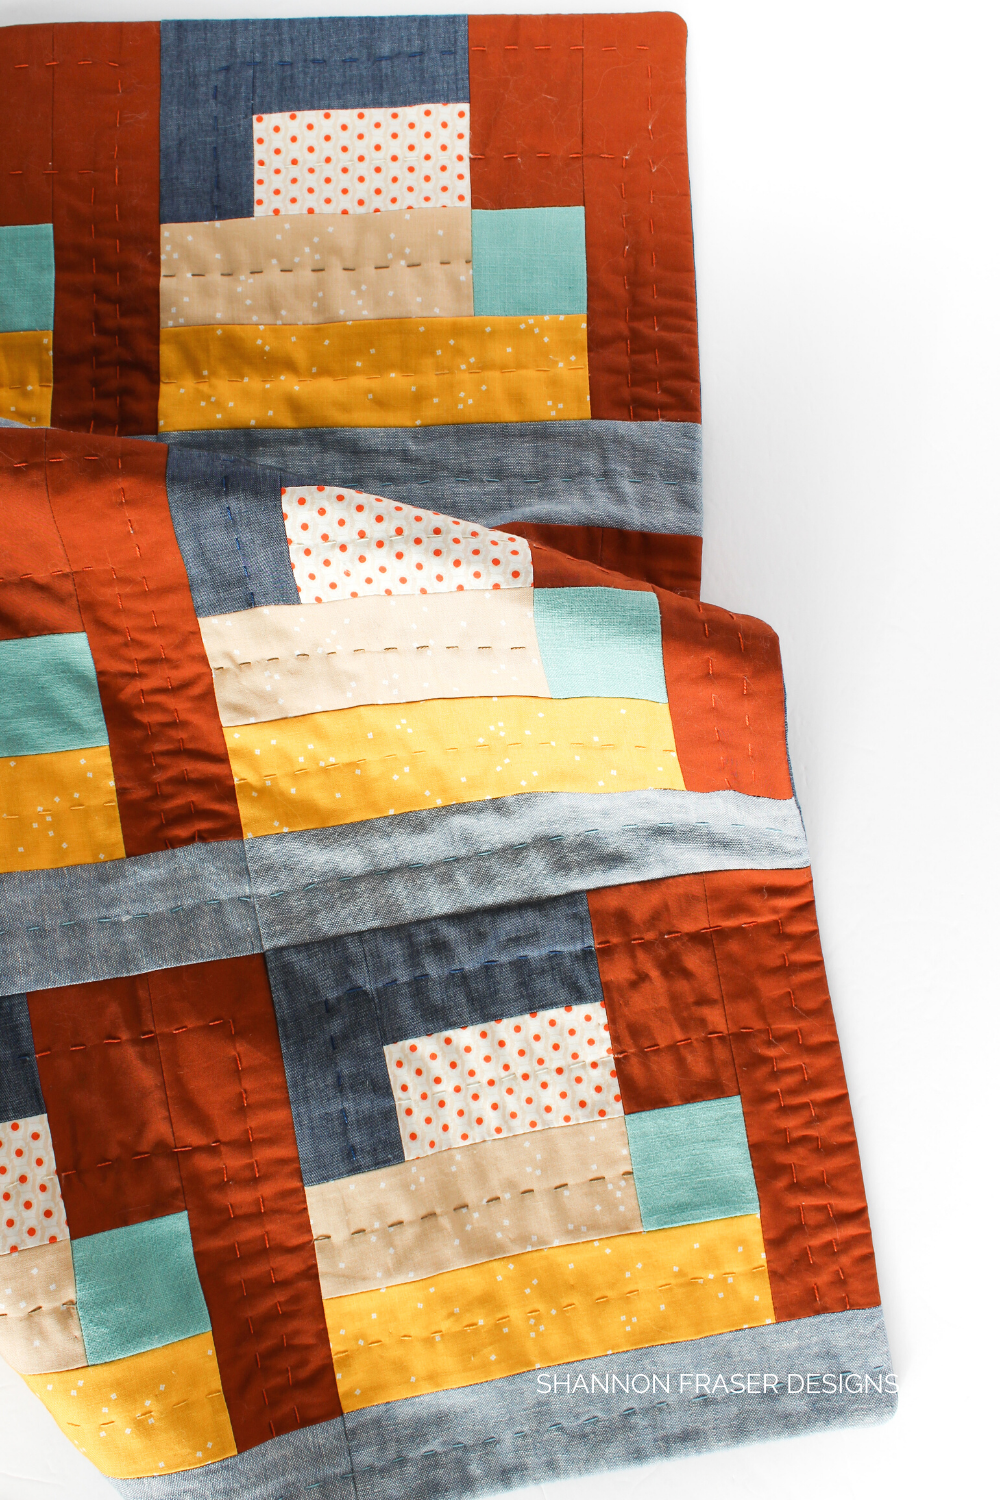 Hand quilted details on the Landmark wall hanging from Urban Quilting Book | Shannon Fraser Designs #modernquilting